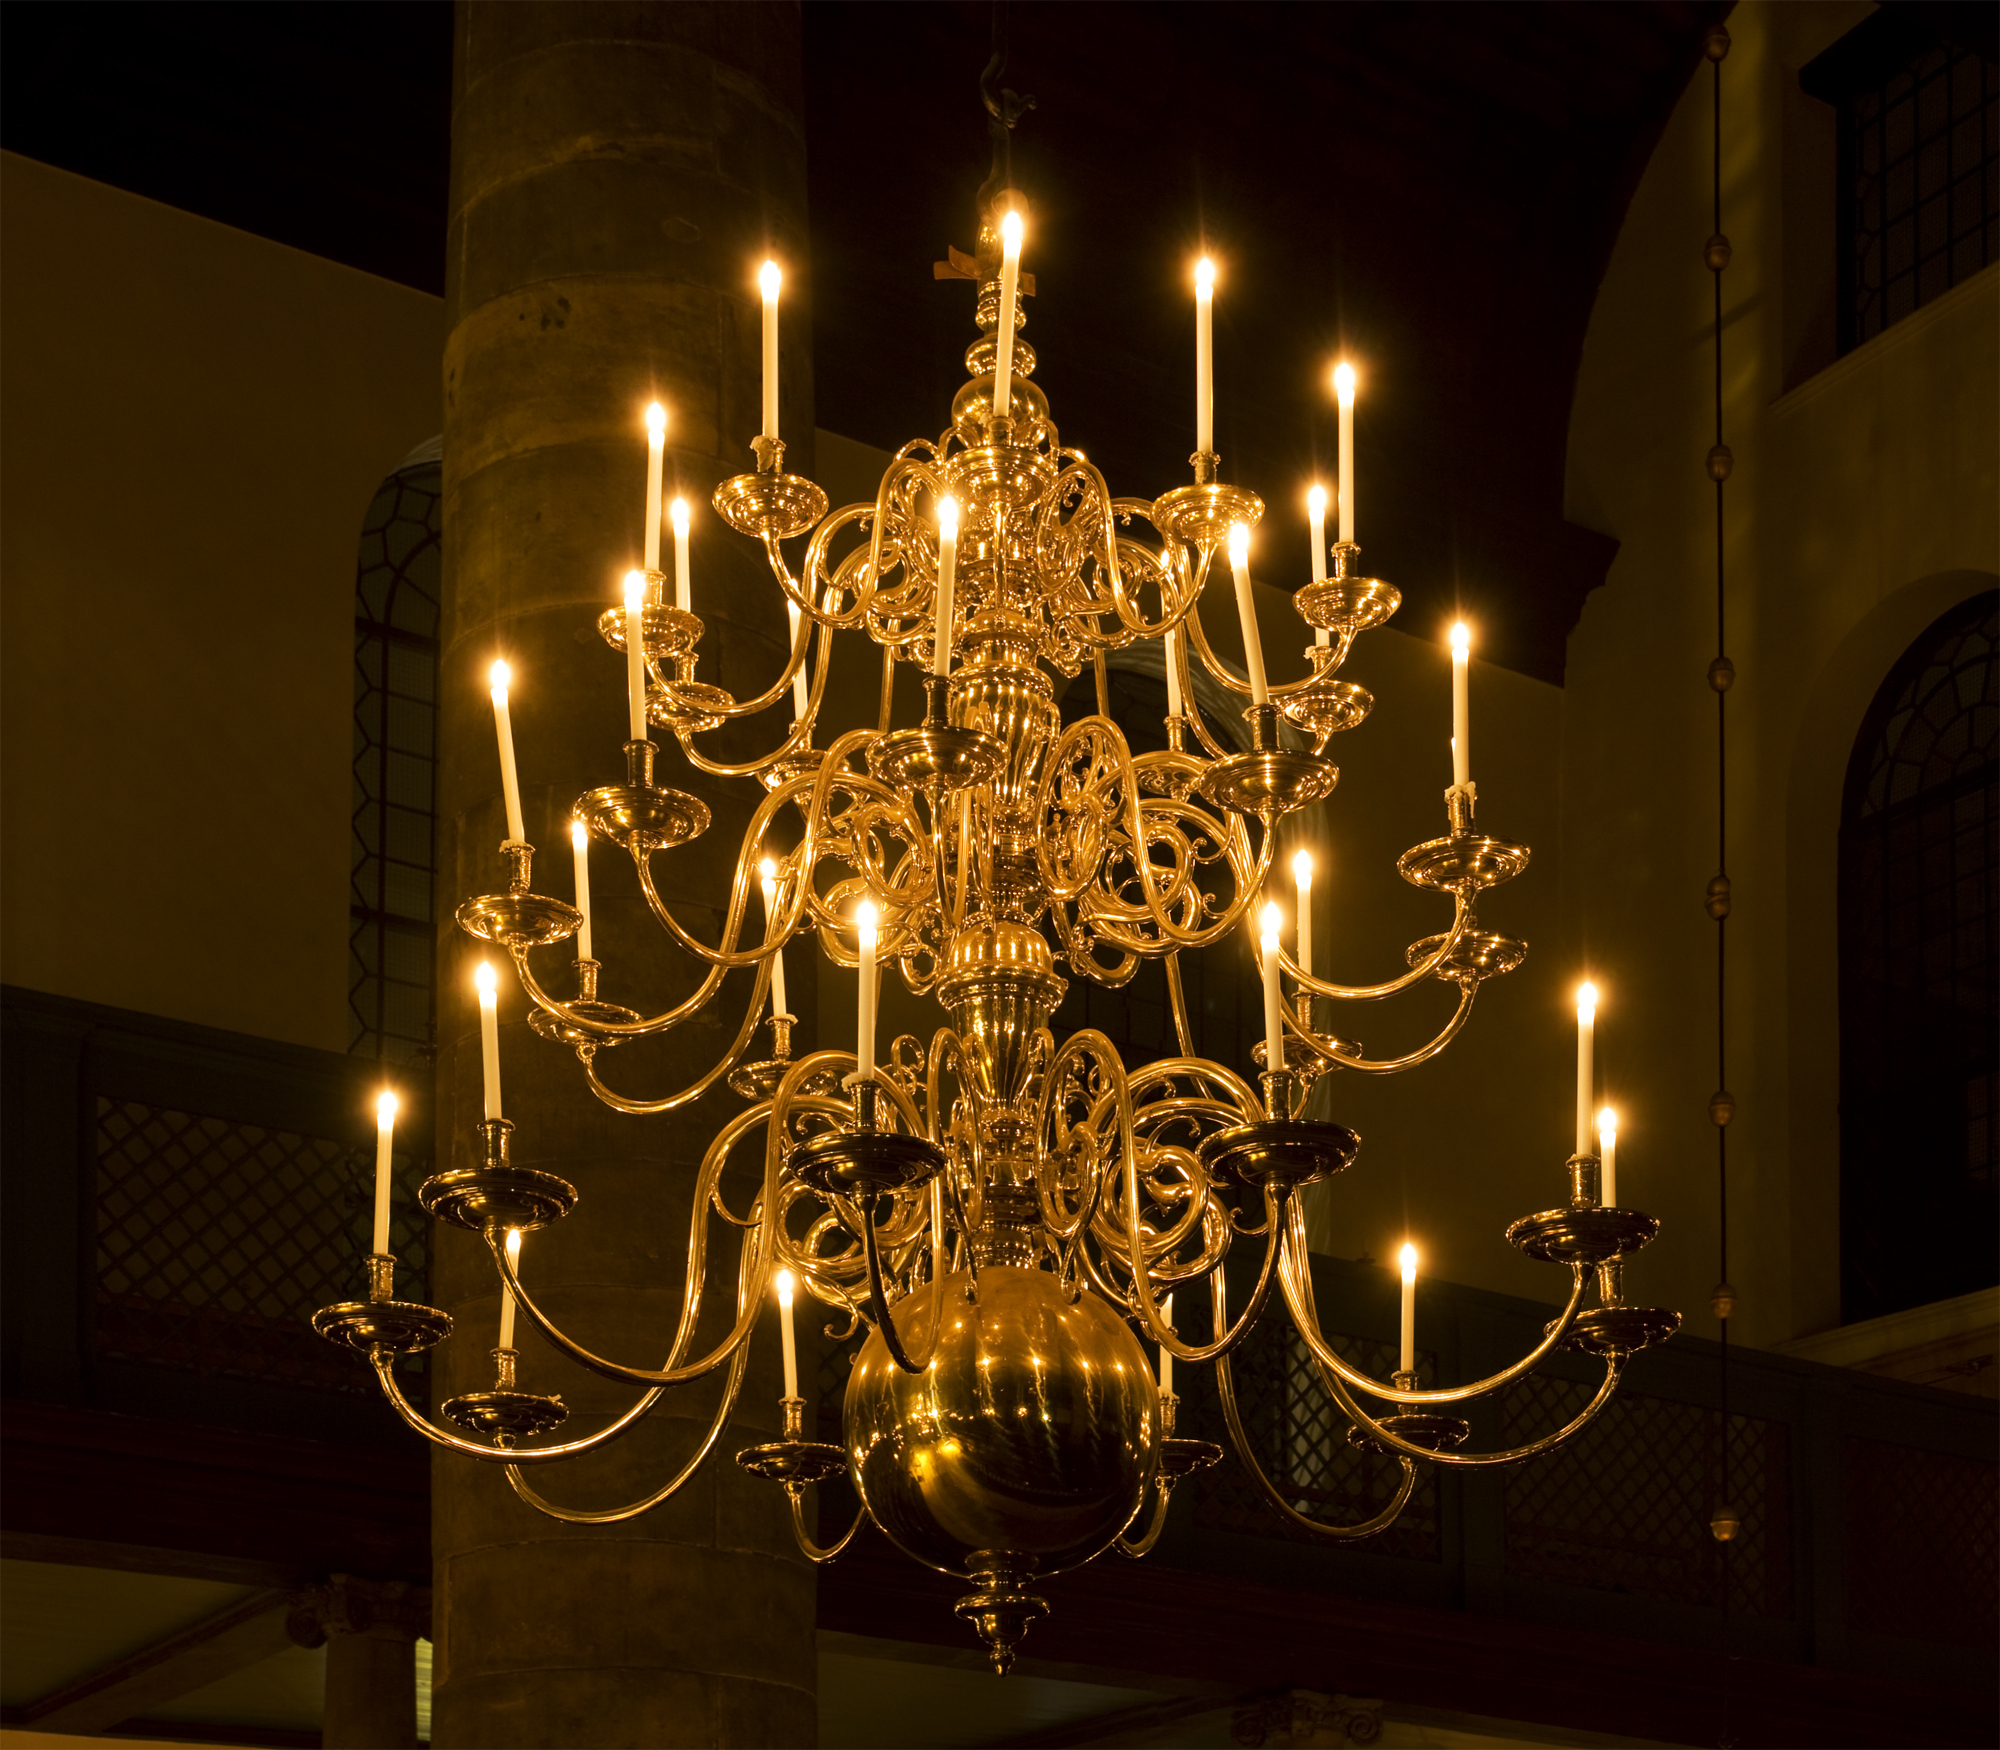 Stylish chandeliers an antique chandelier with candles in amsterdamu0027s portuguese synagogue orqxydc